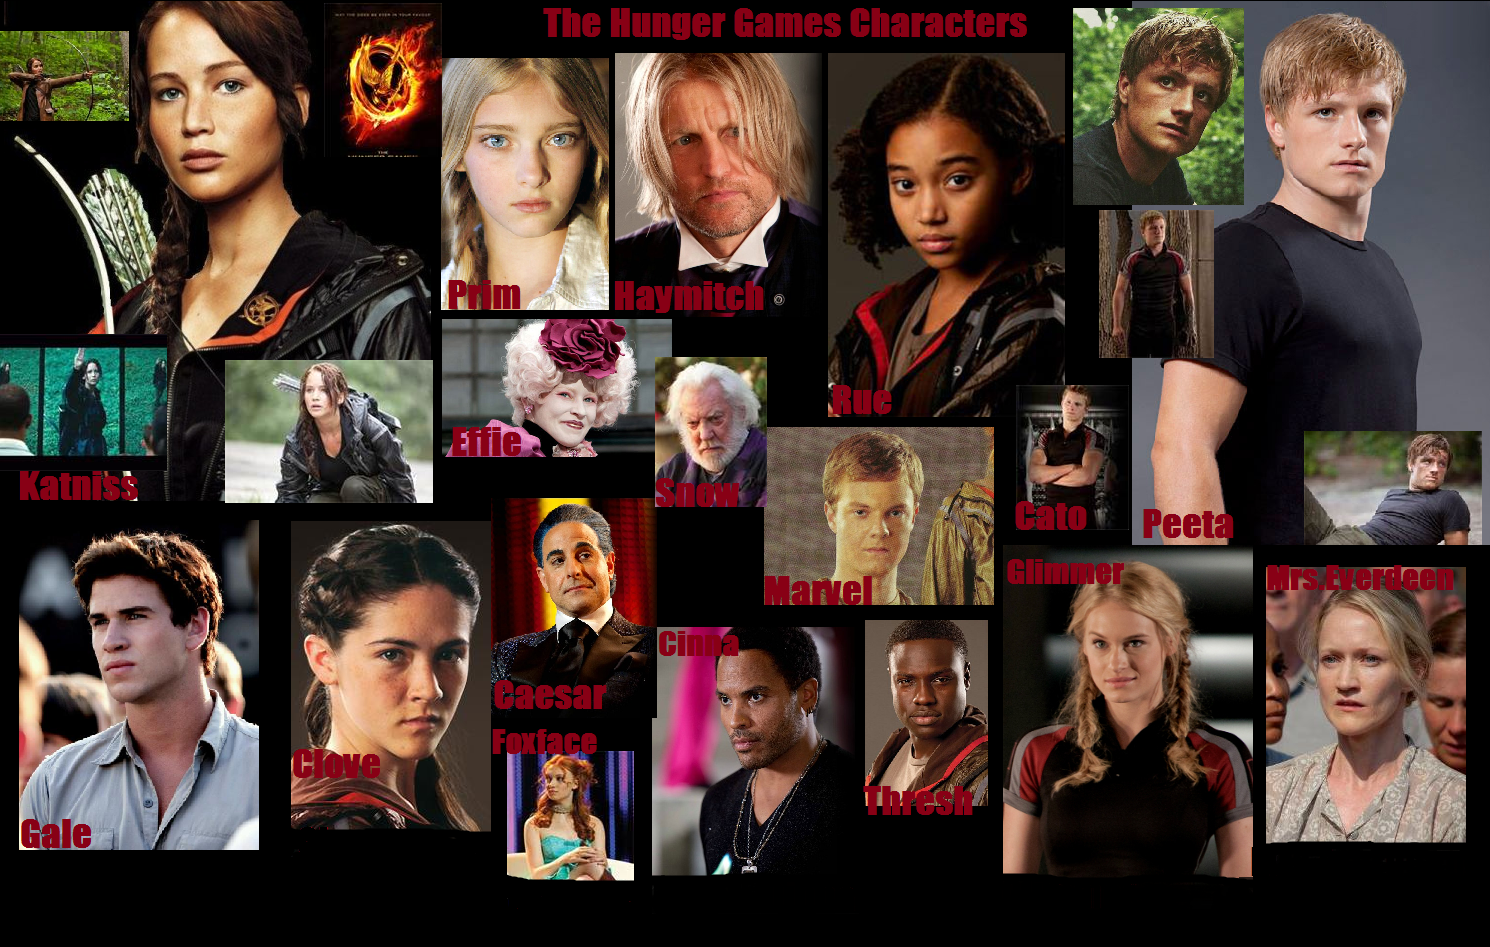 The Hunger Games Photo Hunger Games Characters Hunger Games Characters Hunger Games Hunger Games Images